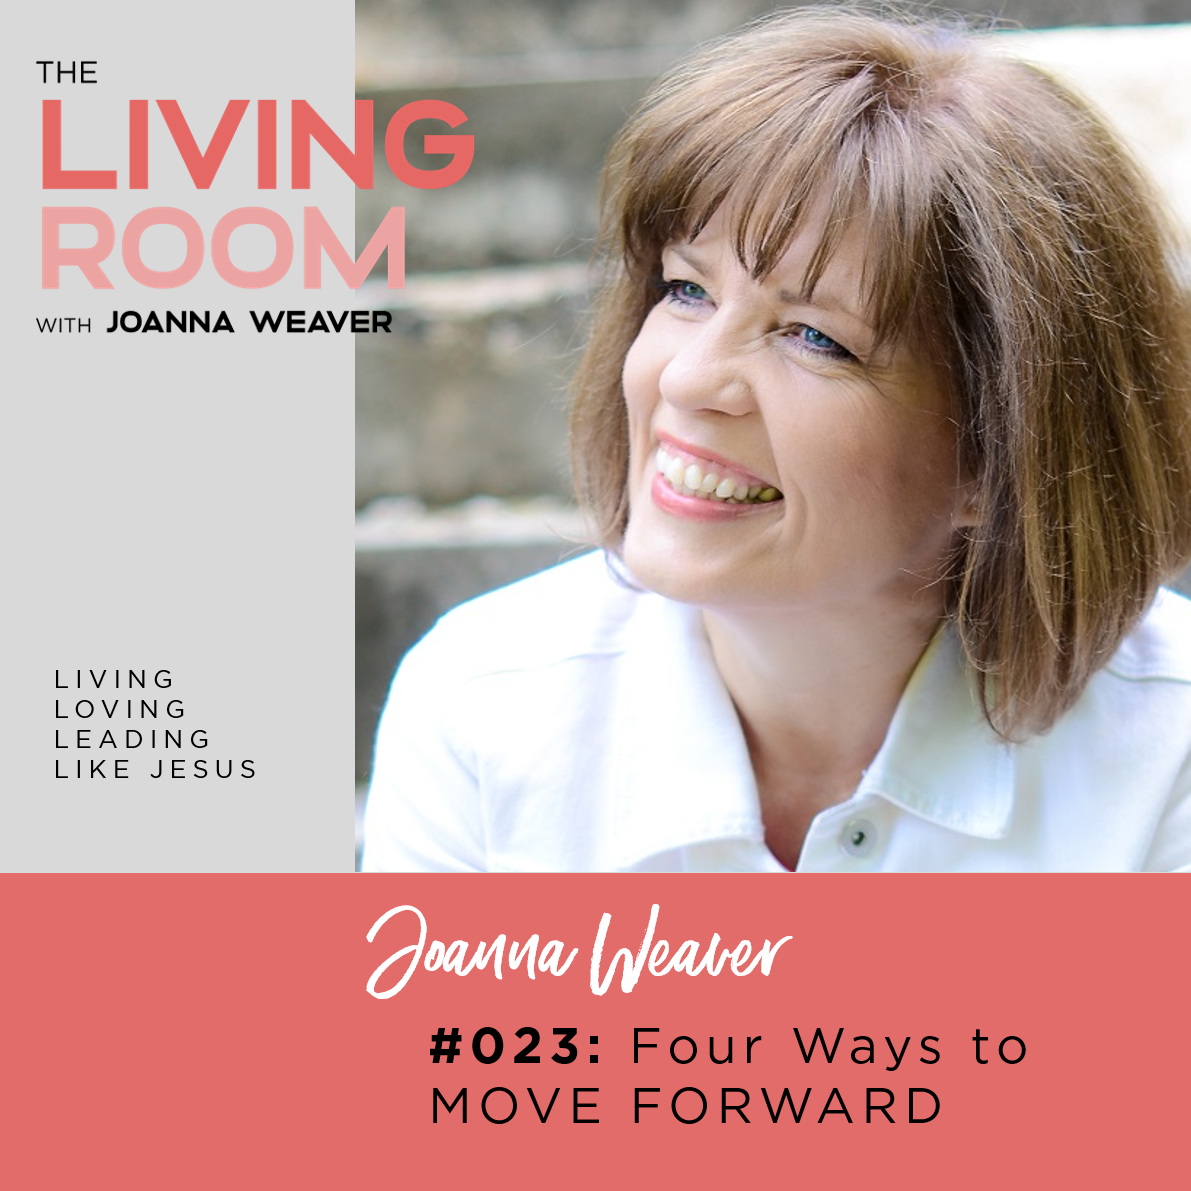 Four Ways to Move Forward with Joanna Weaver - The Living Room Podcast